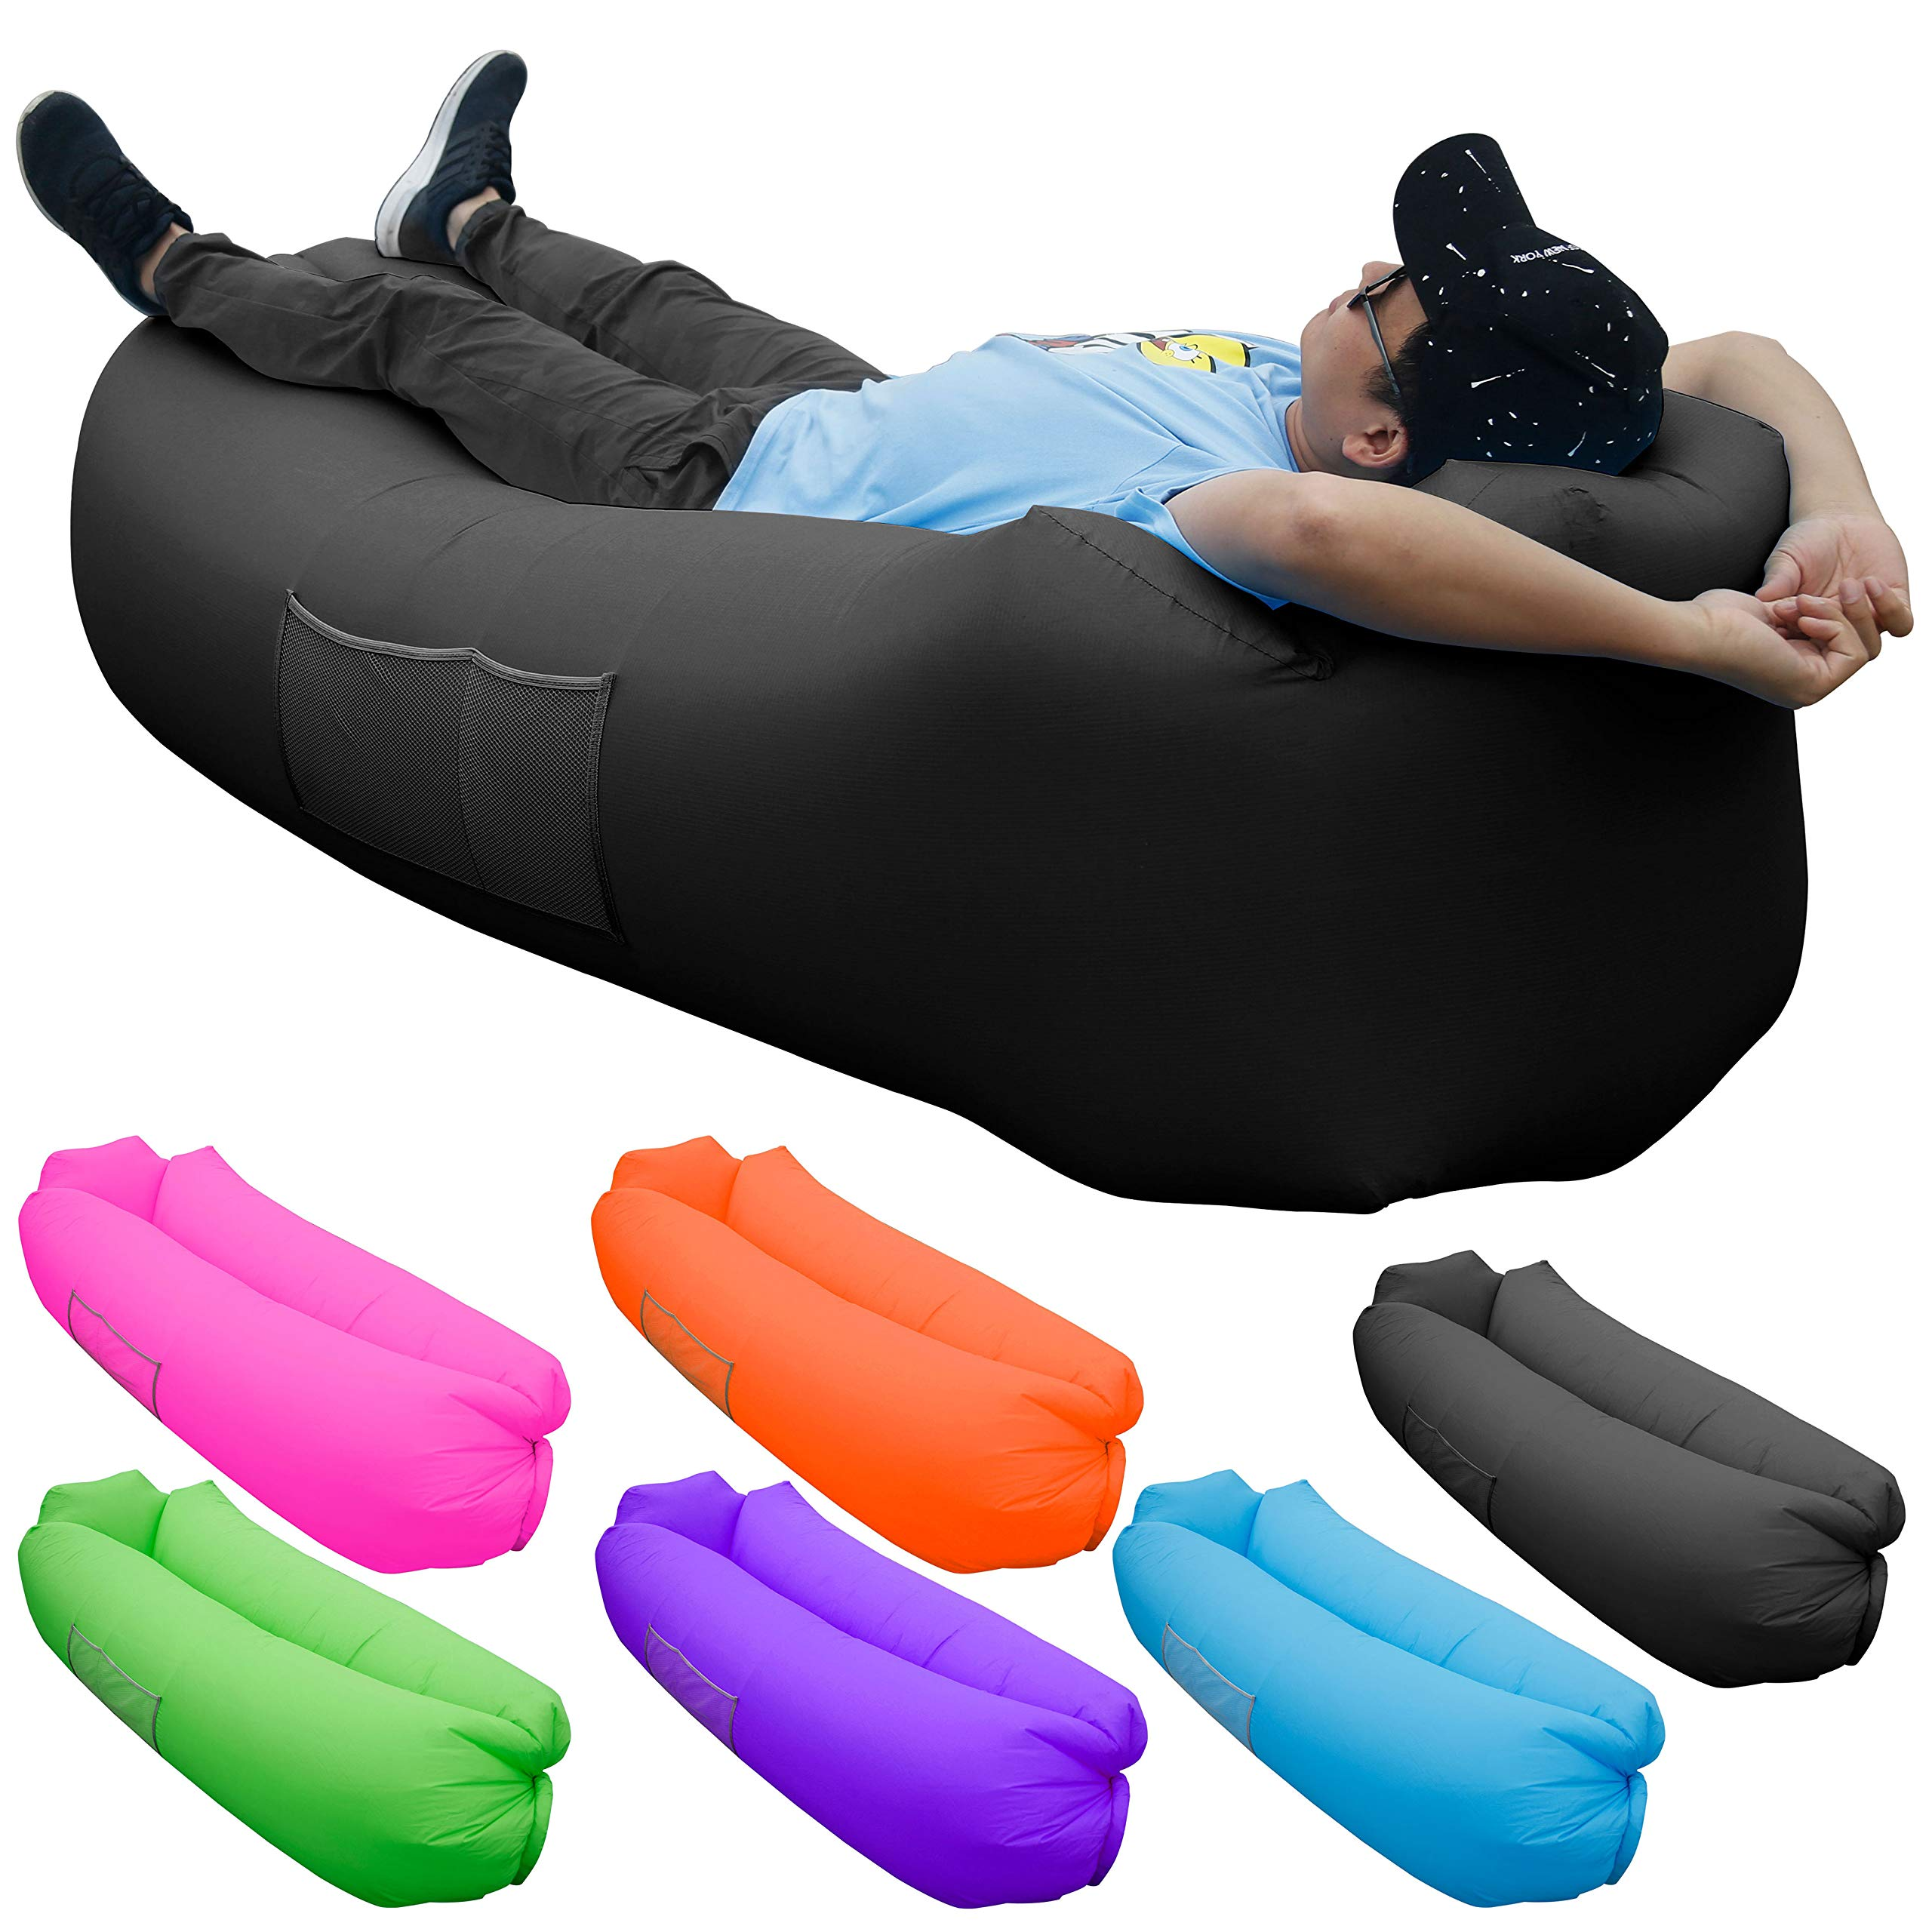 Skoloo Inflatable Lounger Air Sofa, Portable Water Proof Anti-Air Leaking & Pillow-Shaped Designed Couch for Backyard Pool Travel Camping Hiking Lakeside Picnics Music Festivals Beach Parties,Black by SKOLOO